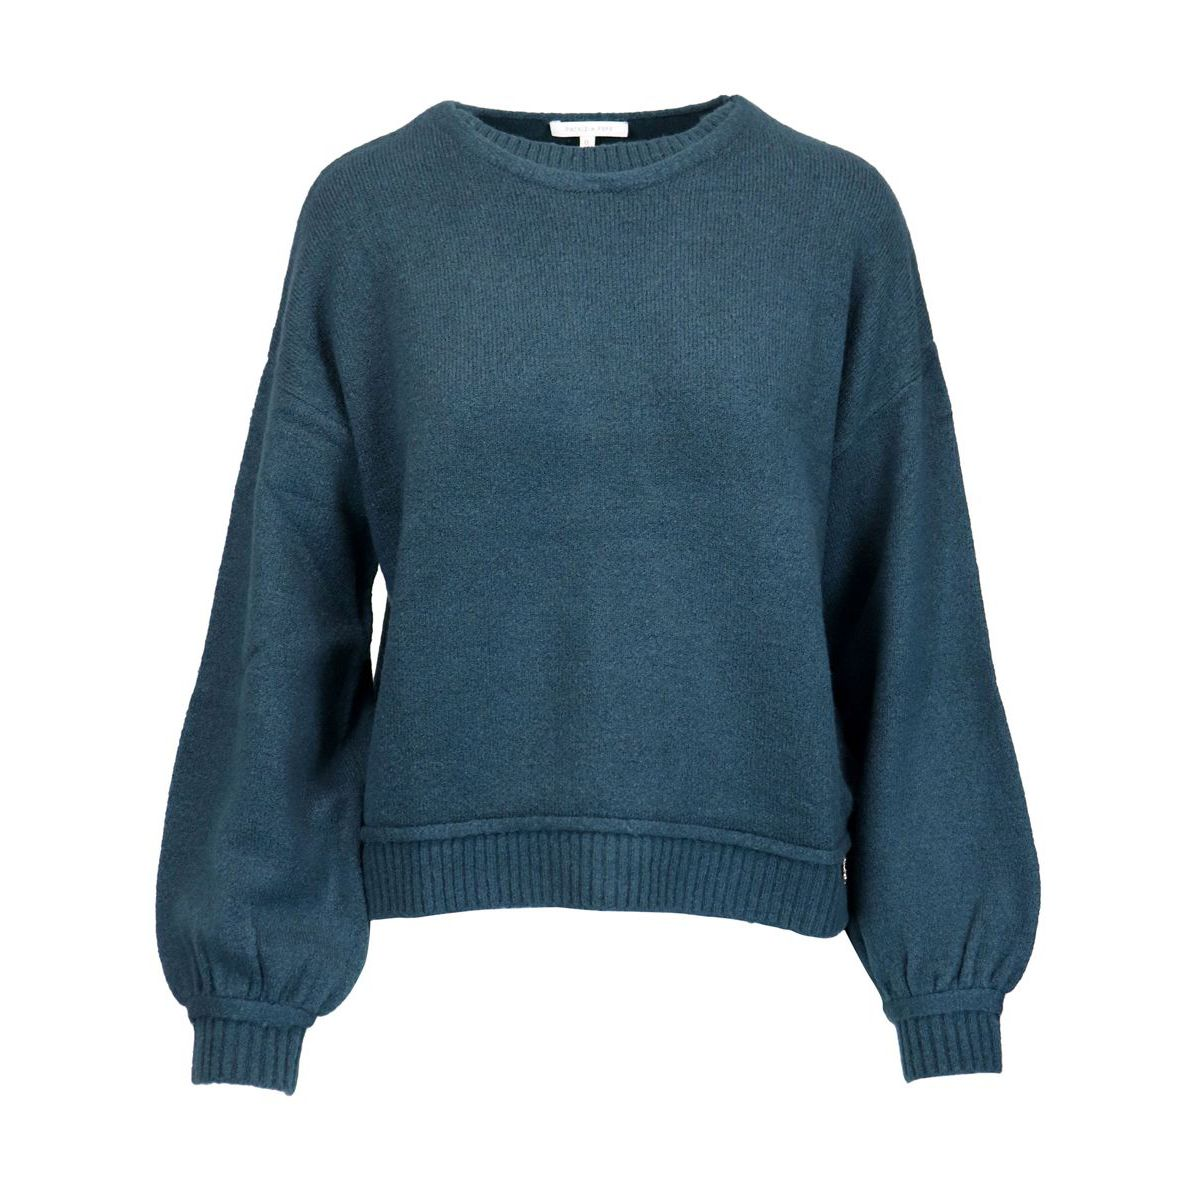 Wool blend sweater with balloon sleeves Teal Patrizia Pepe